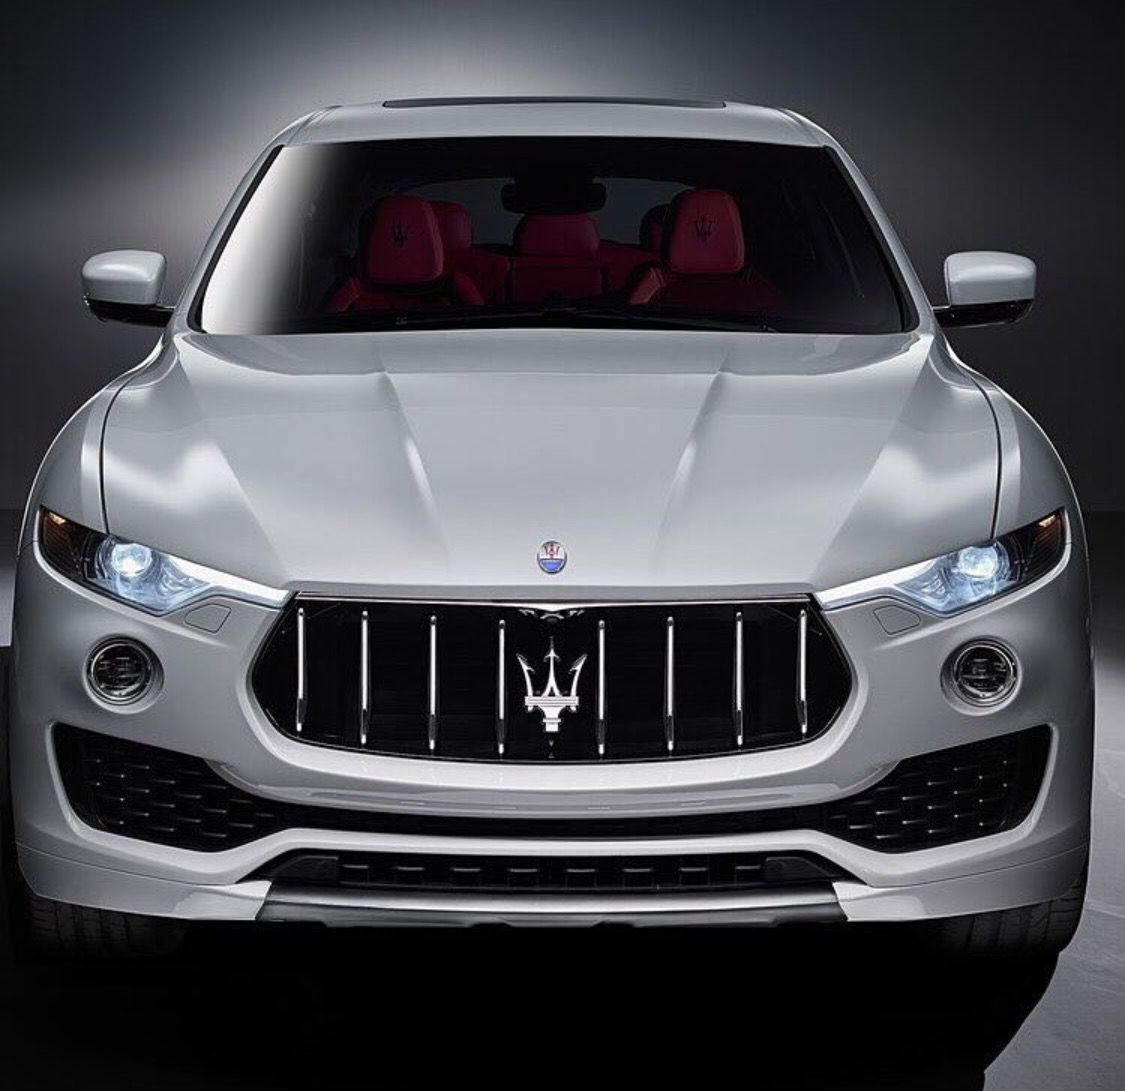 2017 Maserati Levante Suspension: Here Is Maserati's Brand New SUV, The Levante